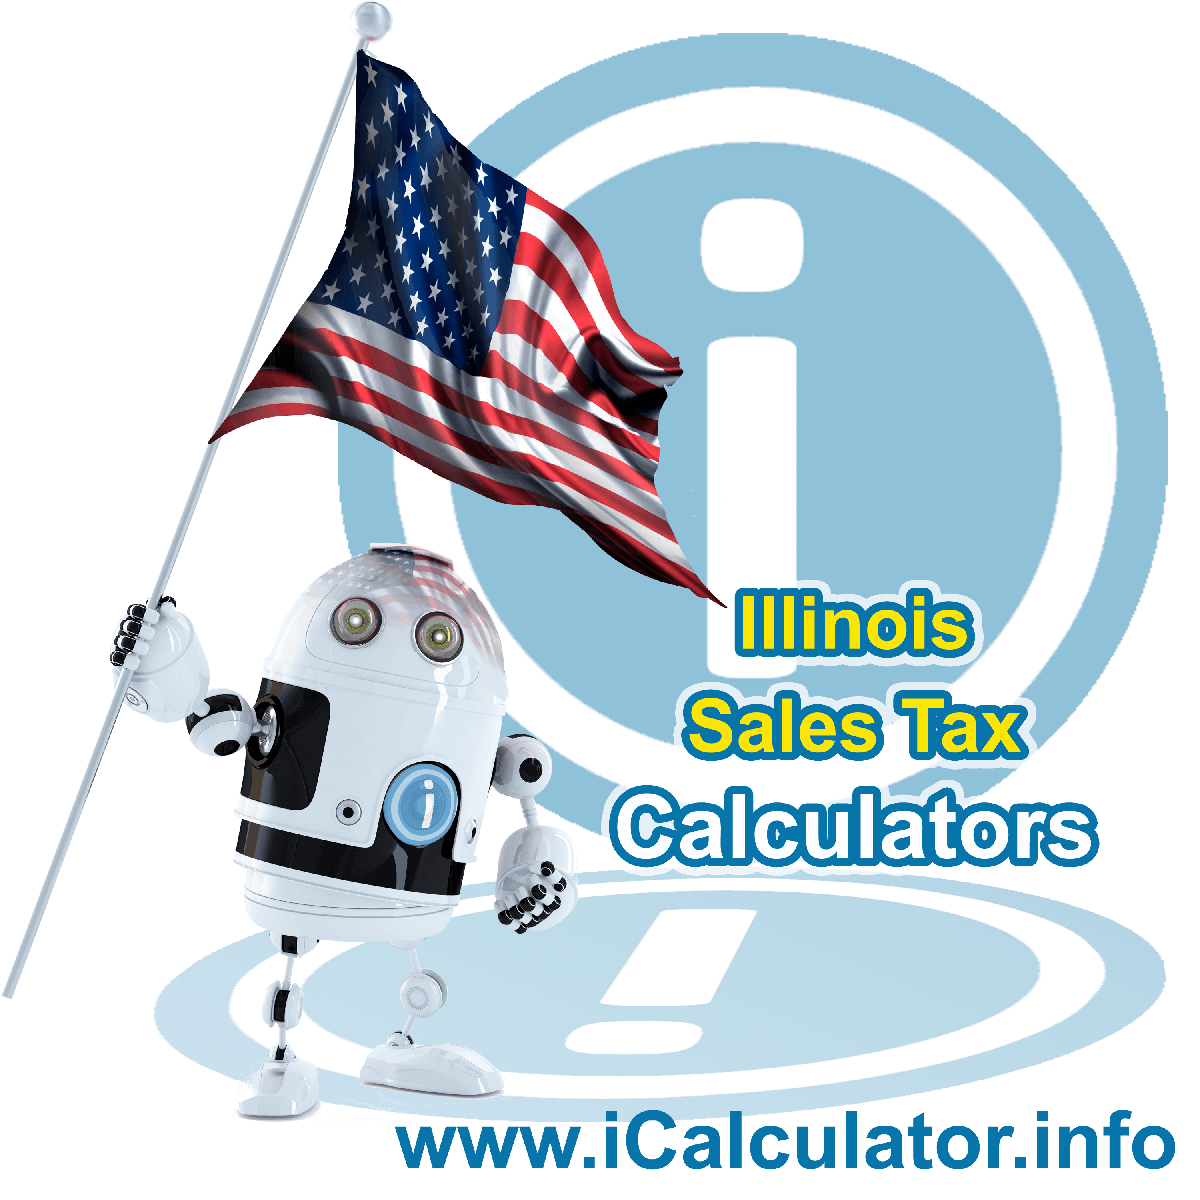 Flossmoor Sales Rates: This image illustrates a calculator robot calculating Flossmoor sales tax manually using the Flossmoor Sales Tax Formula. You can use this information to calculate Flossmoor Sales Tax manually or use the Flossmoor Sales Tax Calculator to calculate sales tax online.